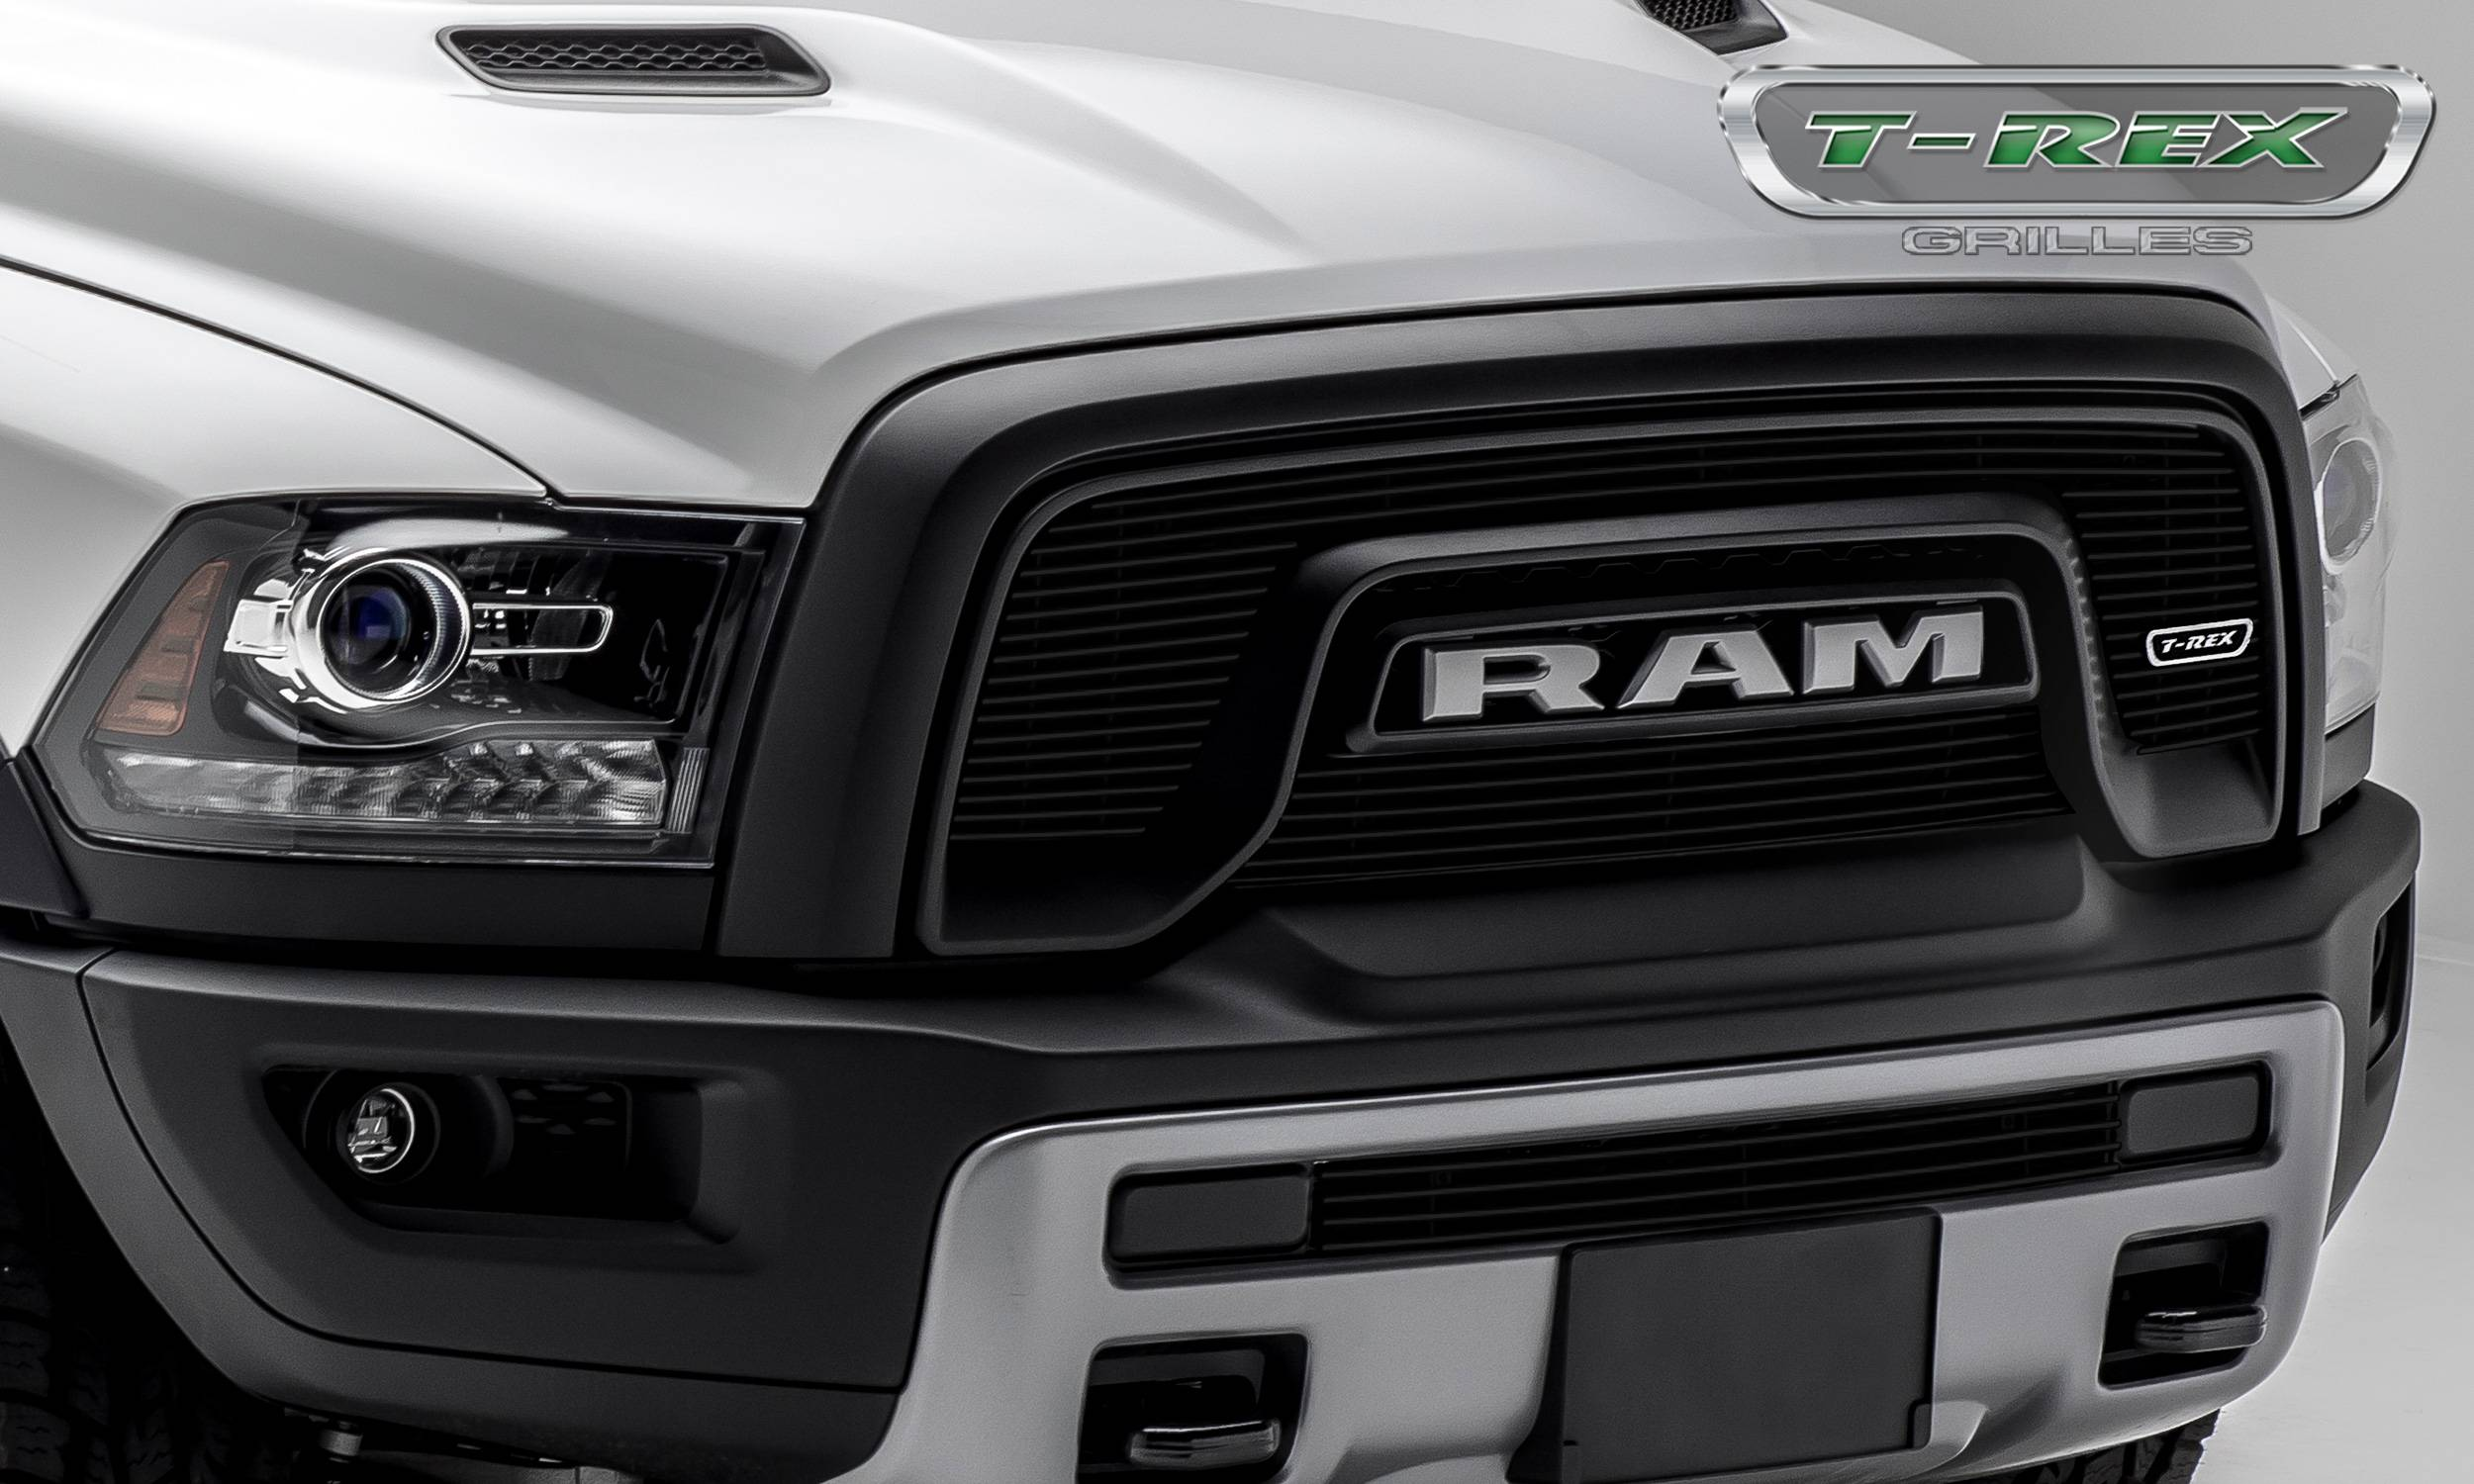 T-REX Grilles - T-REX Ram Rebel - Billet Series - 2 Pc. Main Grille Overlay - Laser Cut Aluminum w/ Black Powder Coated Finish - Part #6214641